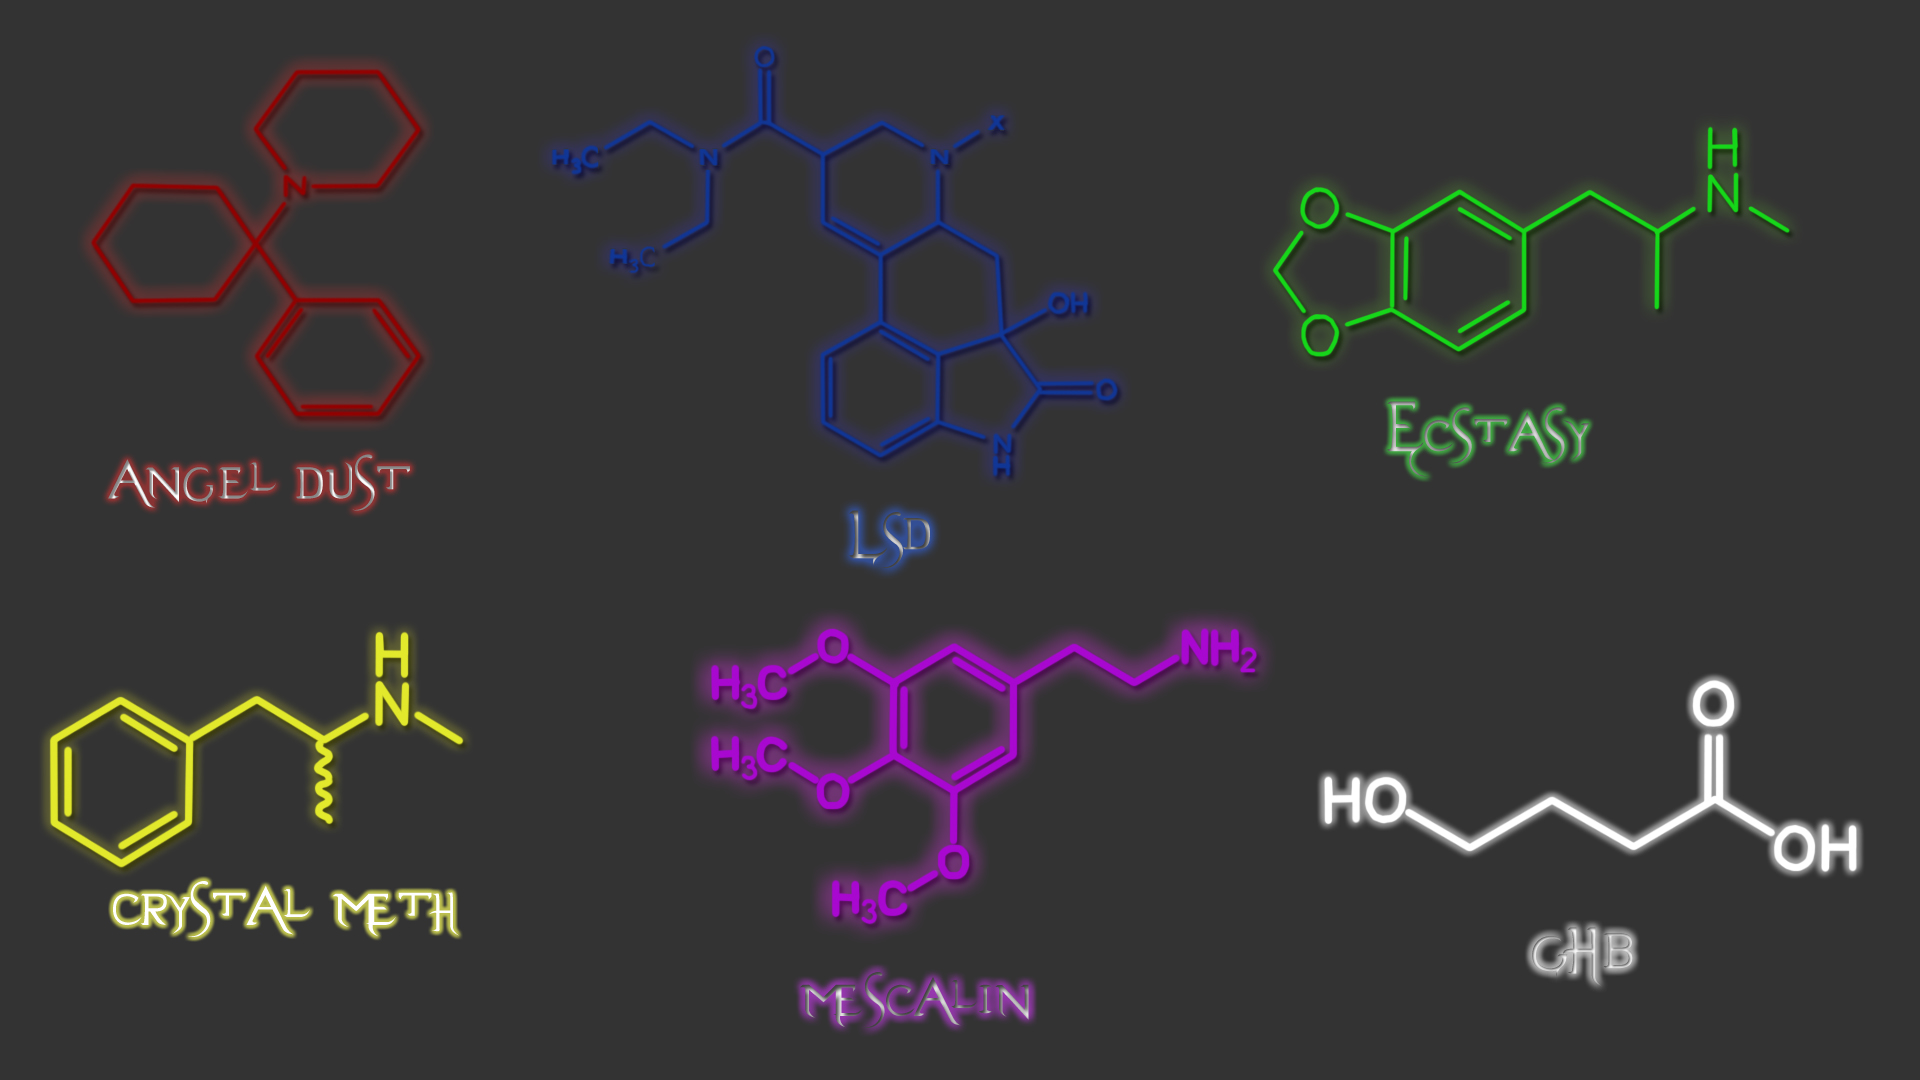 Chemistry Acid 1920x1080 Wallpaper High Resolution 1920x1080